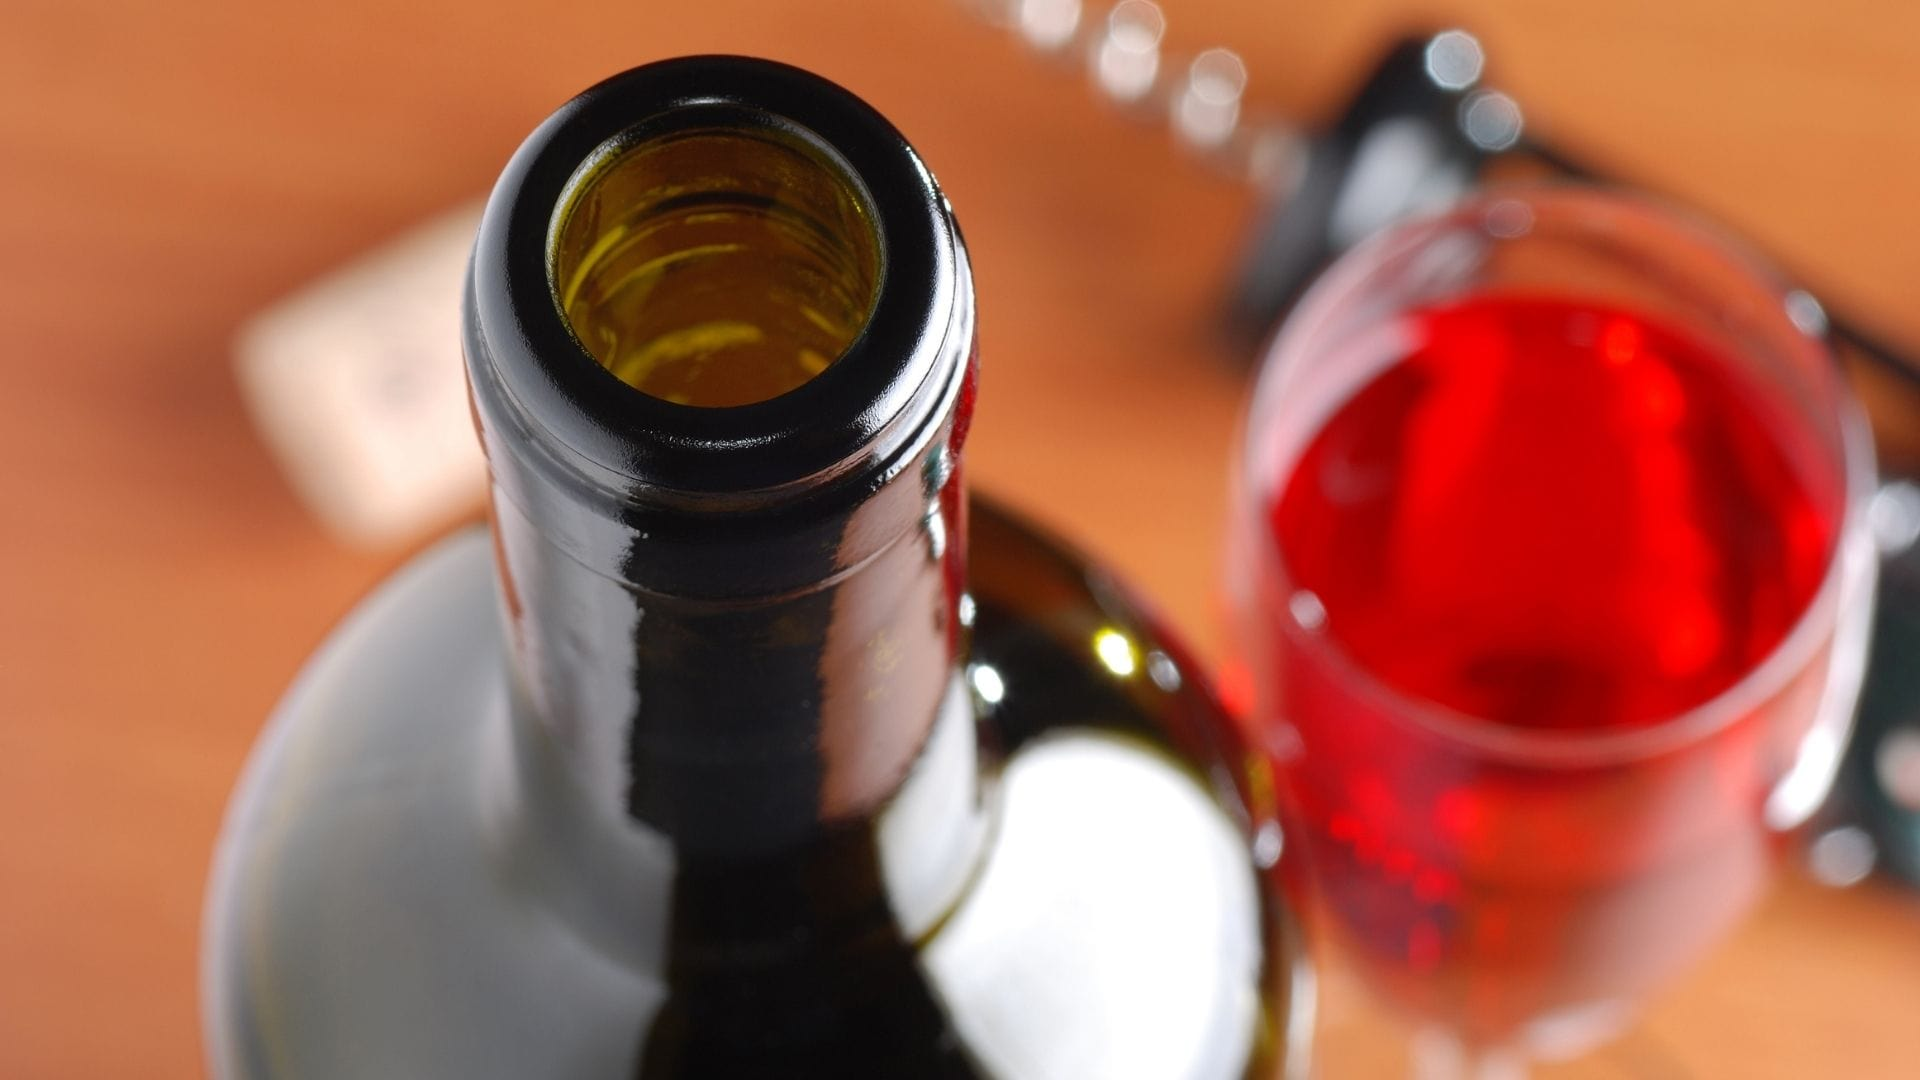 Unifinished bottle of wine's lifespan with a wine preserver